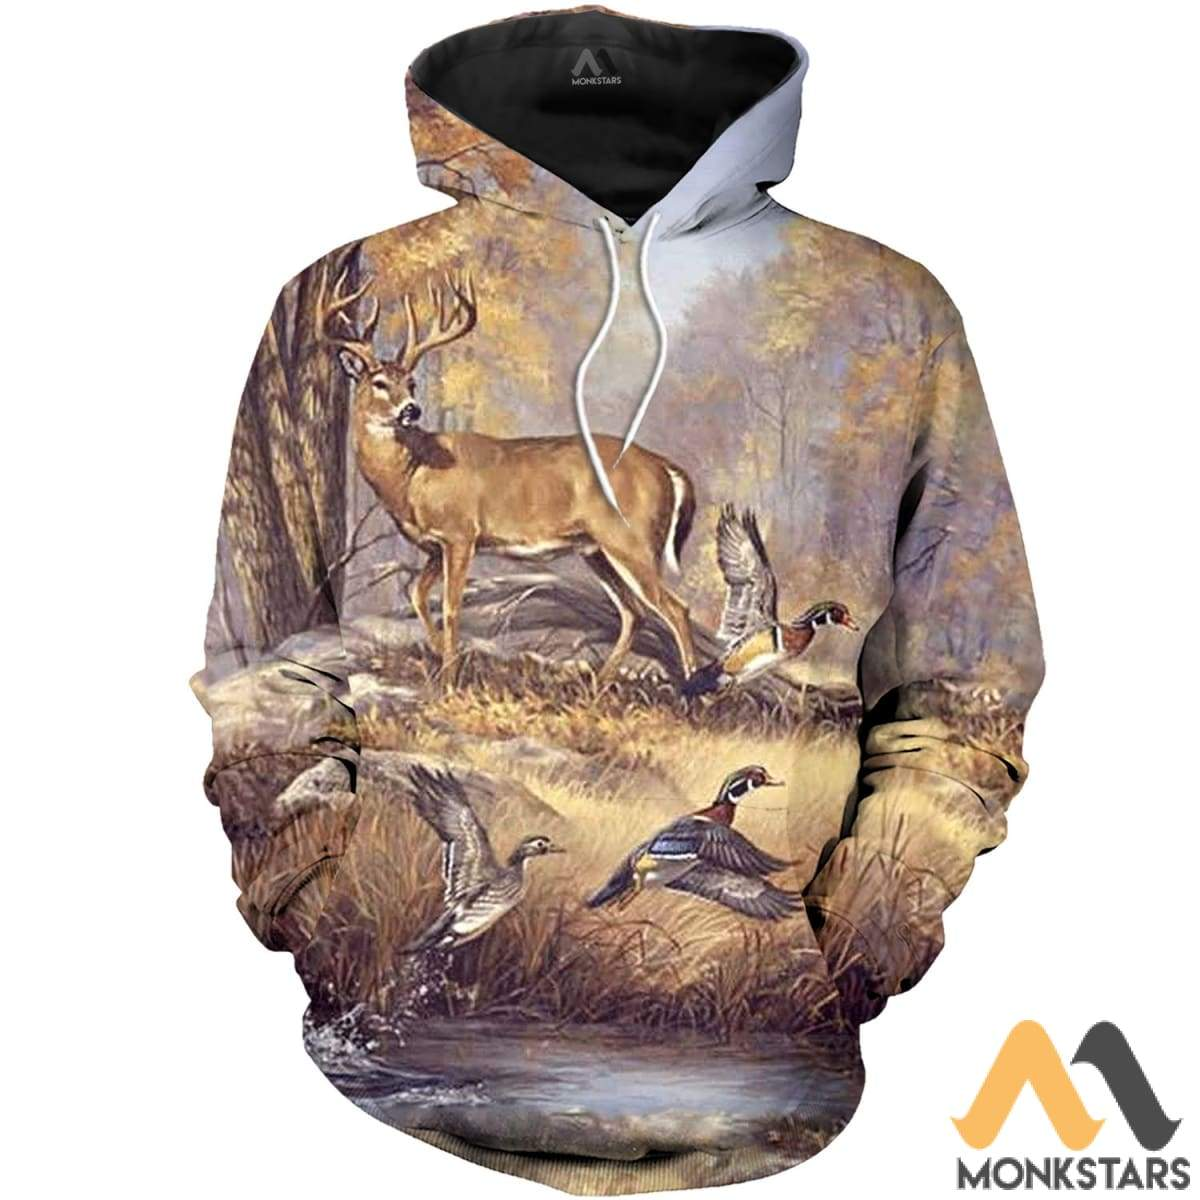 Duck And Deer 3D All Over Printed Shirts For Men & Women Normal Hoodie / Xs Clothes